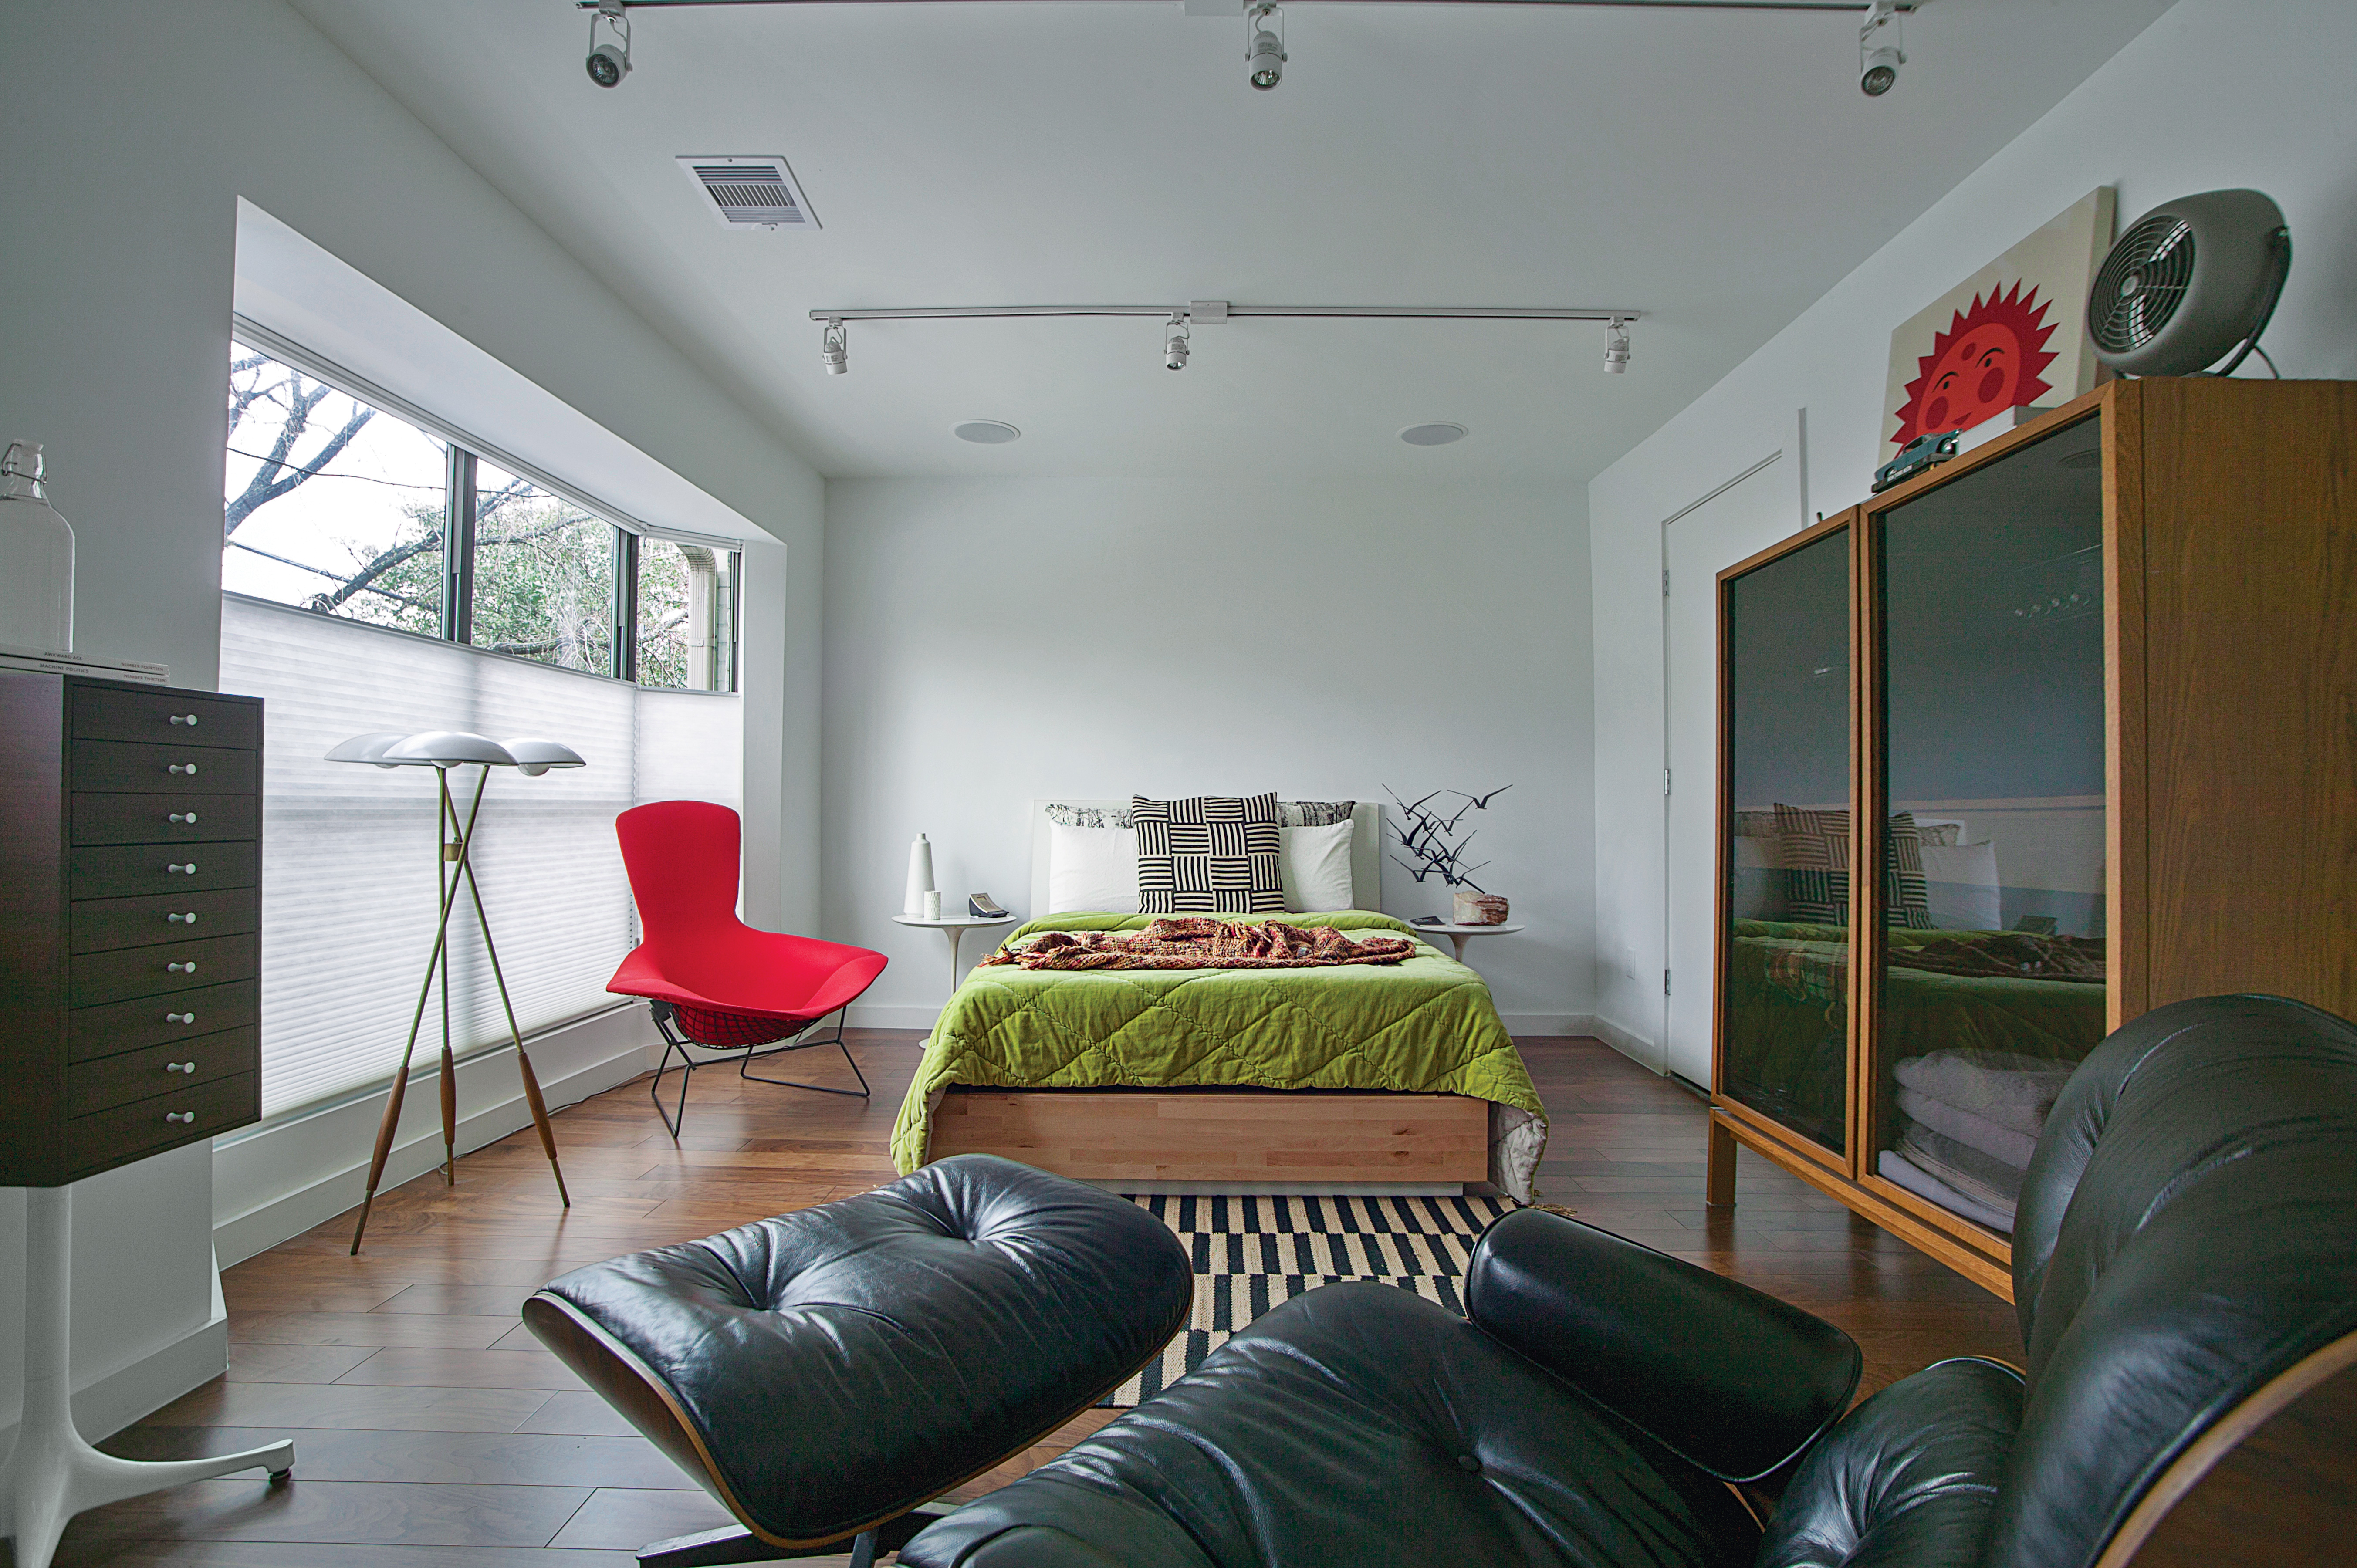 Stanford Street townhouse bedroom renovation